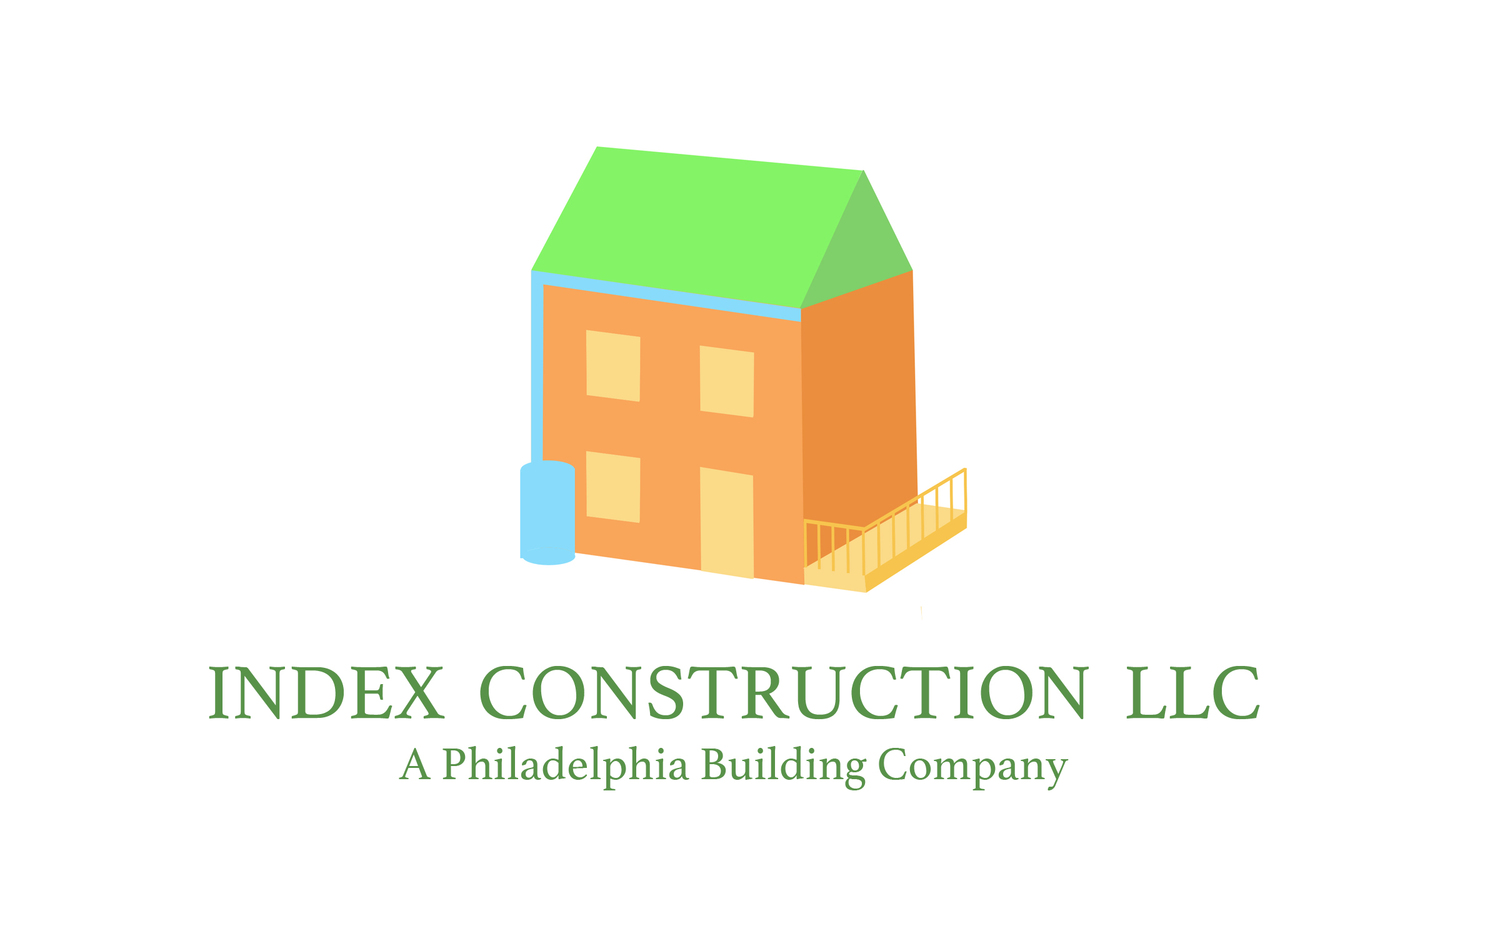 Index Construction LLC